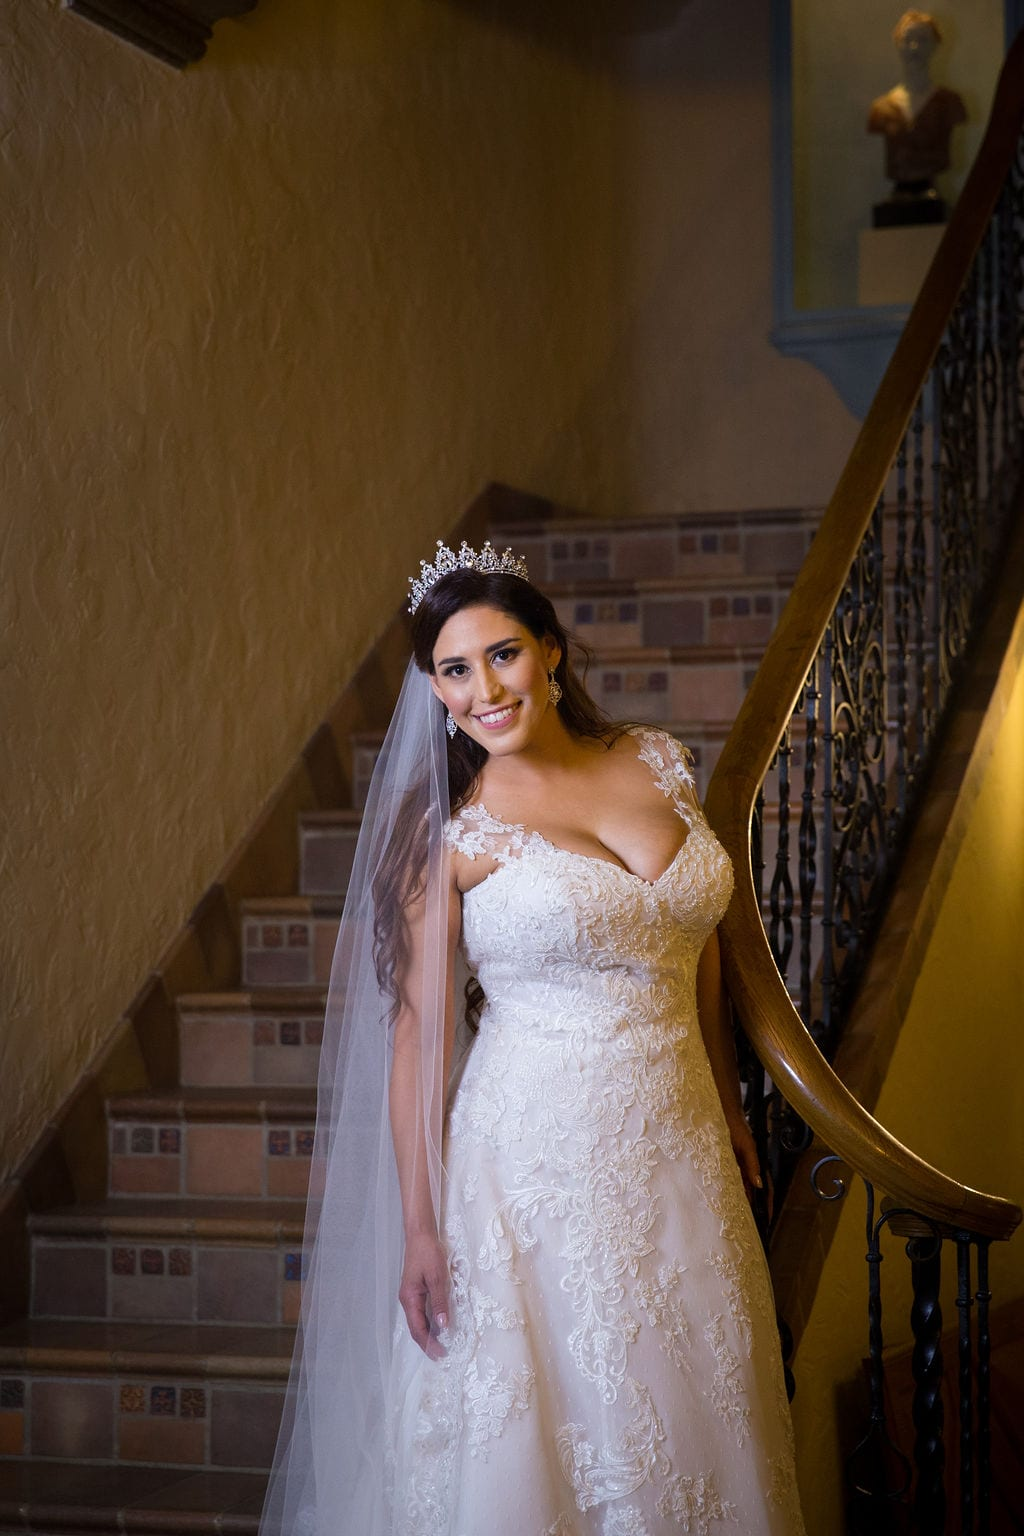 Mary Elizabeth's bridal at the McNay headshot inside stair